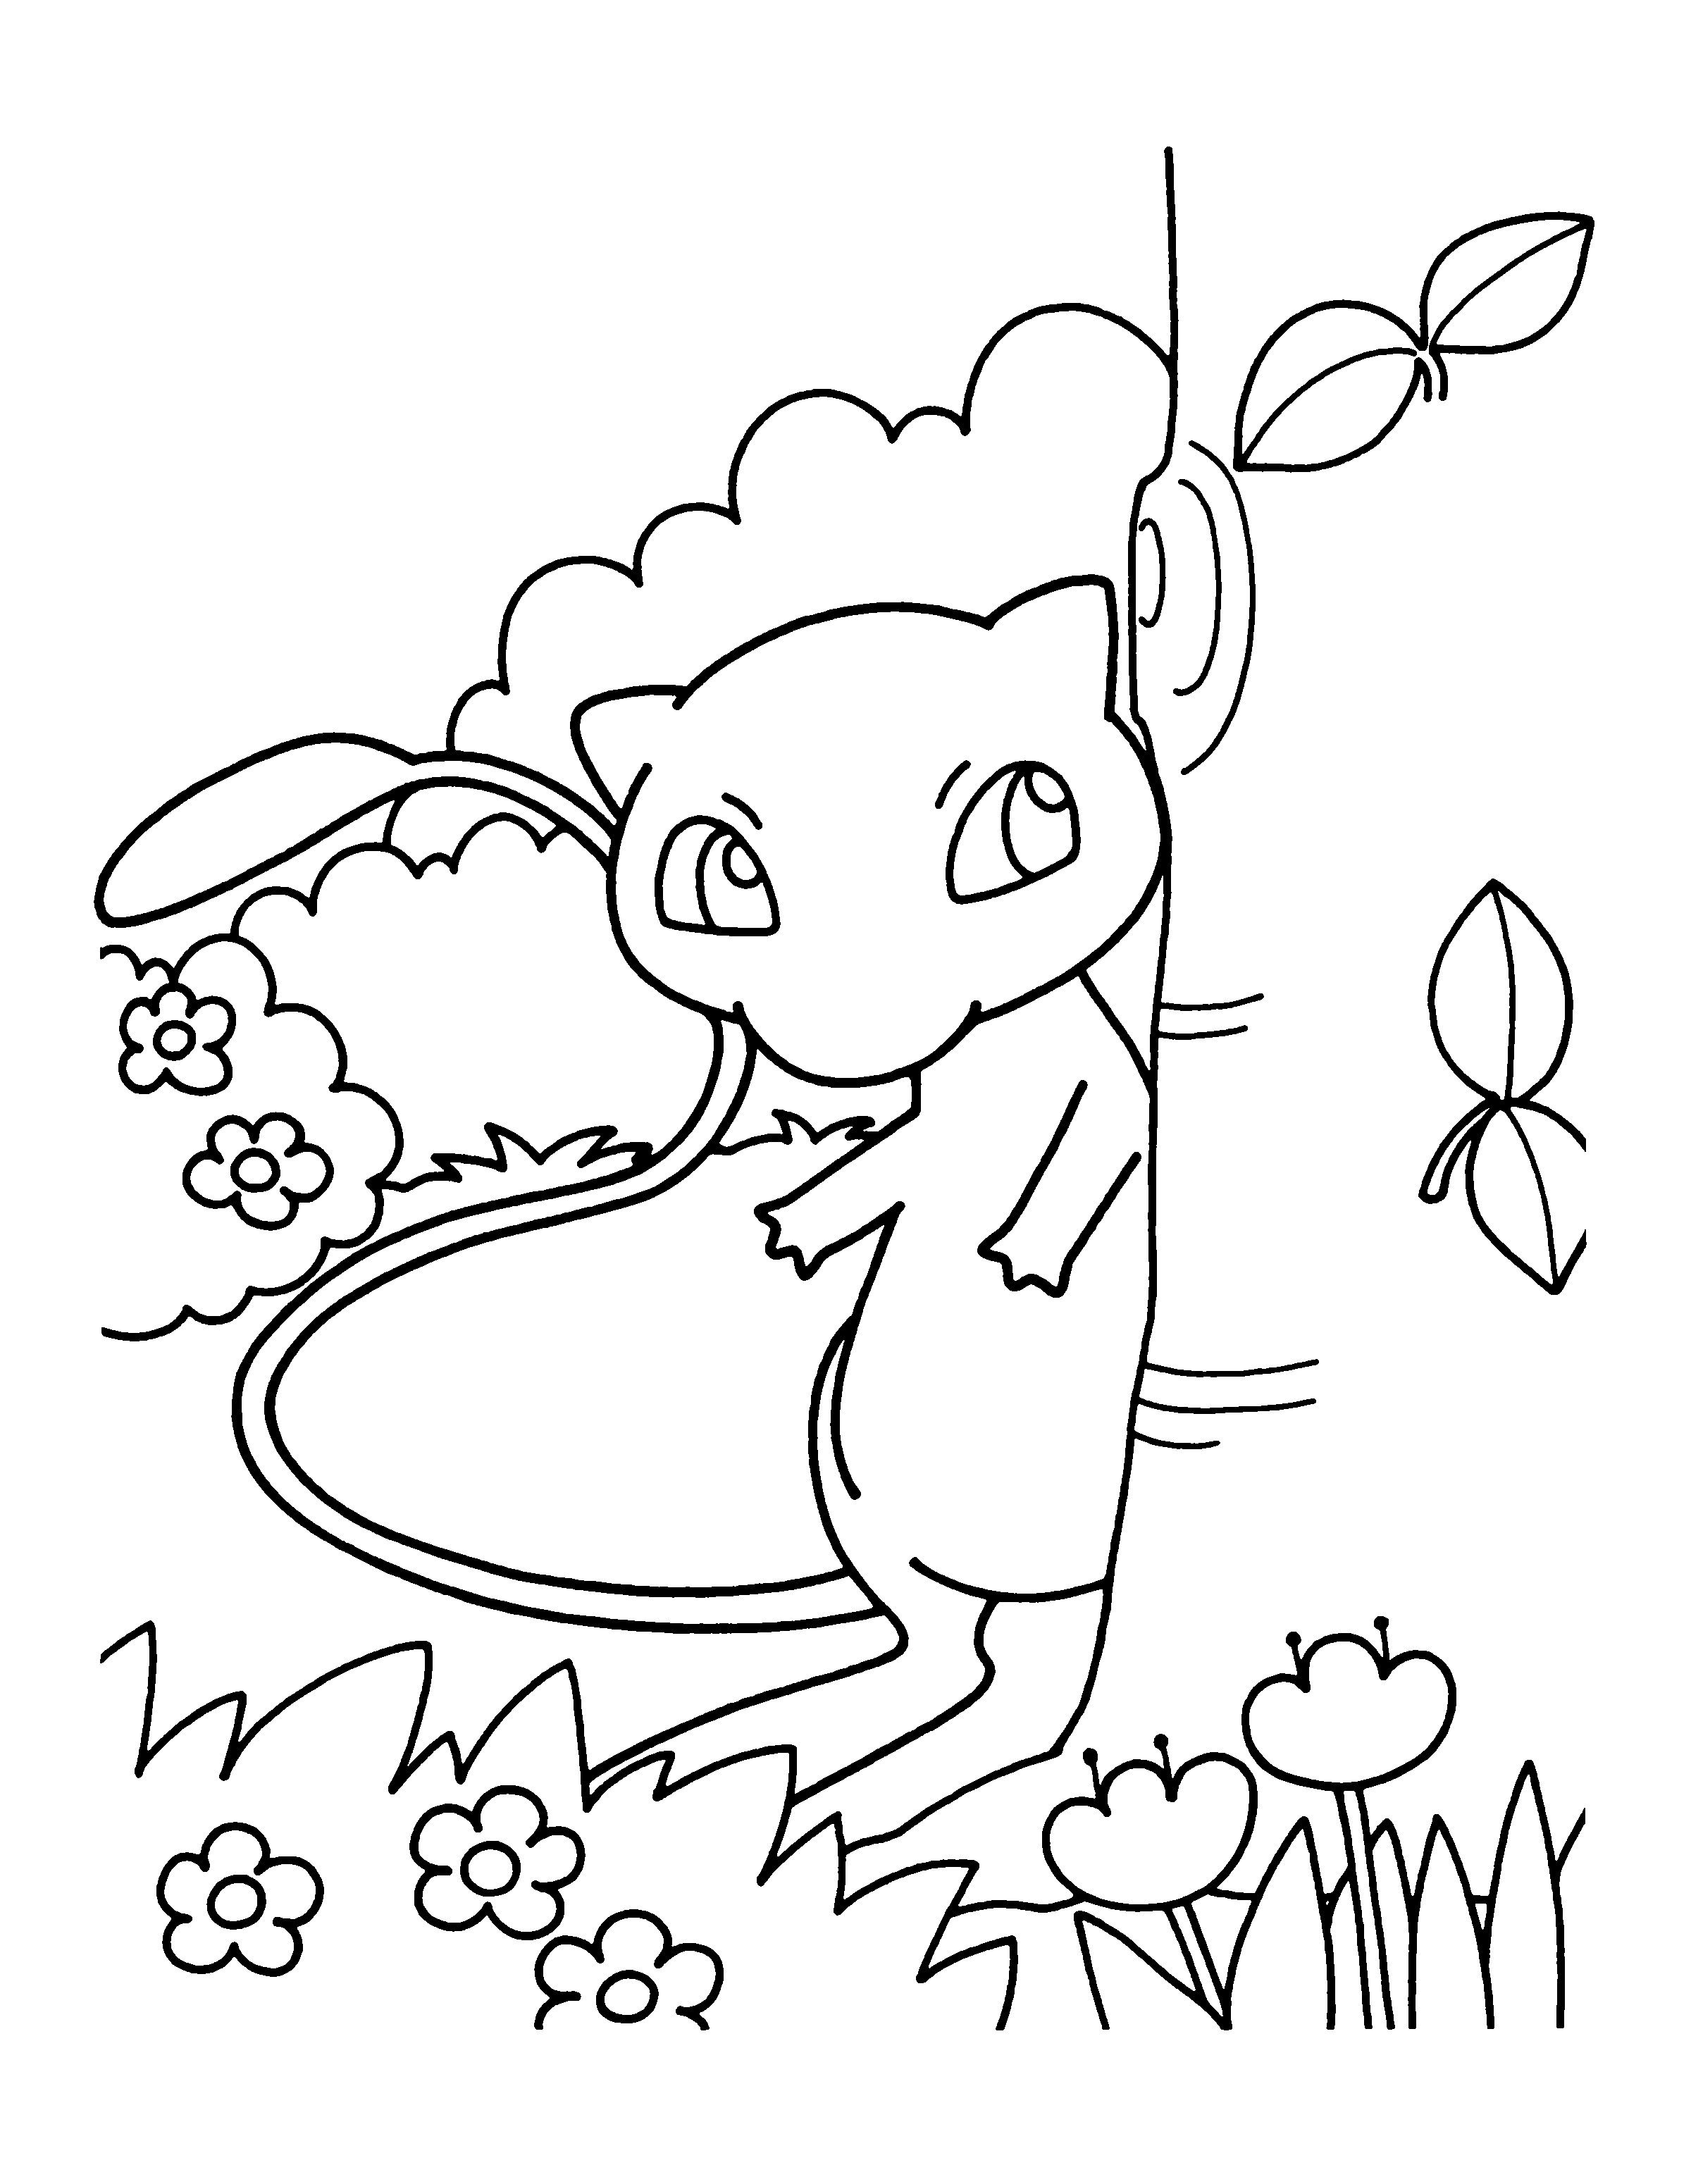 Pokemon Lapras Coloring Pages – From the thousand photographs on